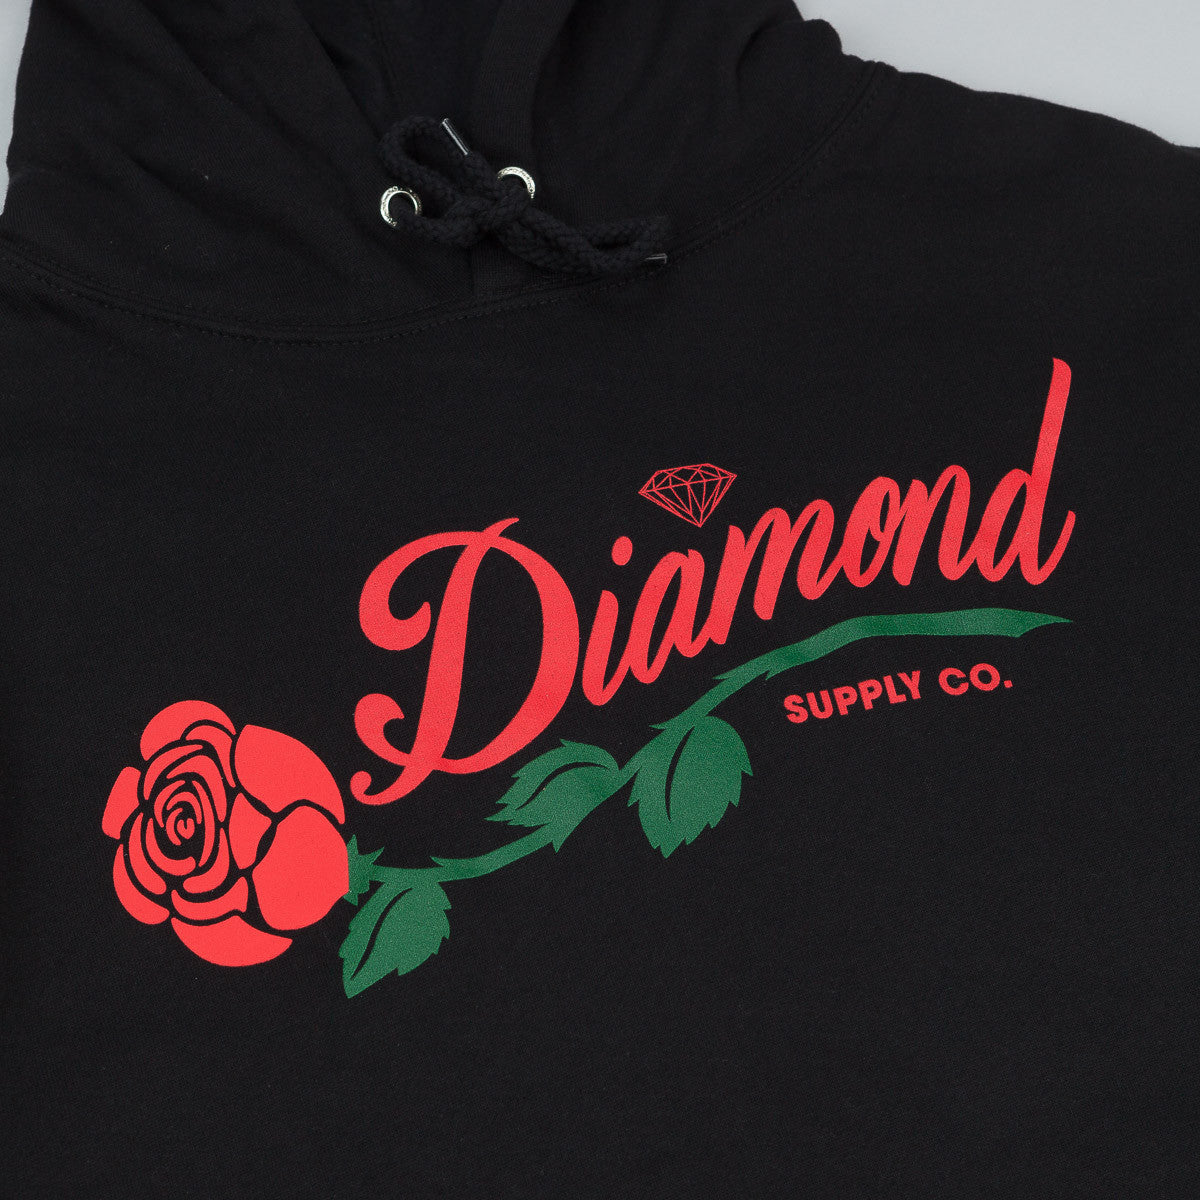 Diamond La Rosa Hooded Sweatshirt - Black